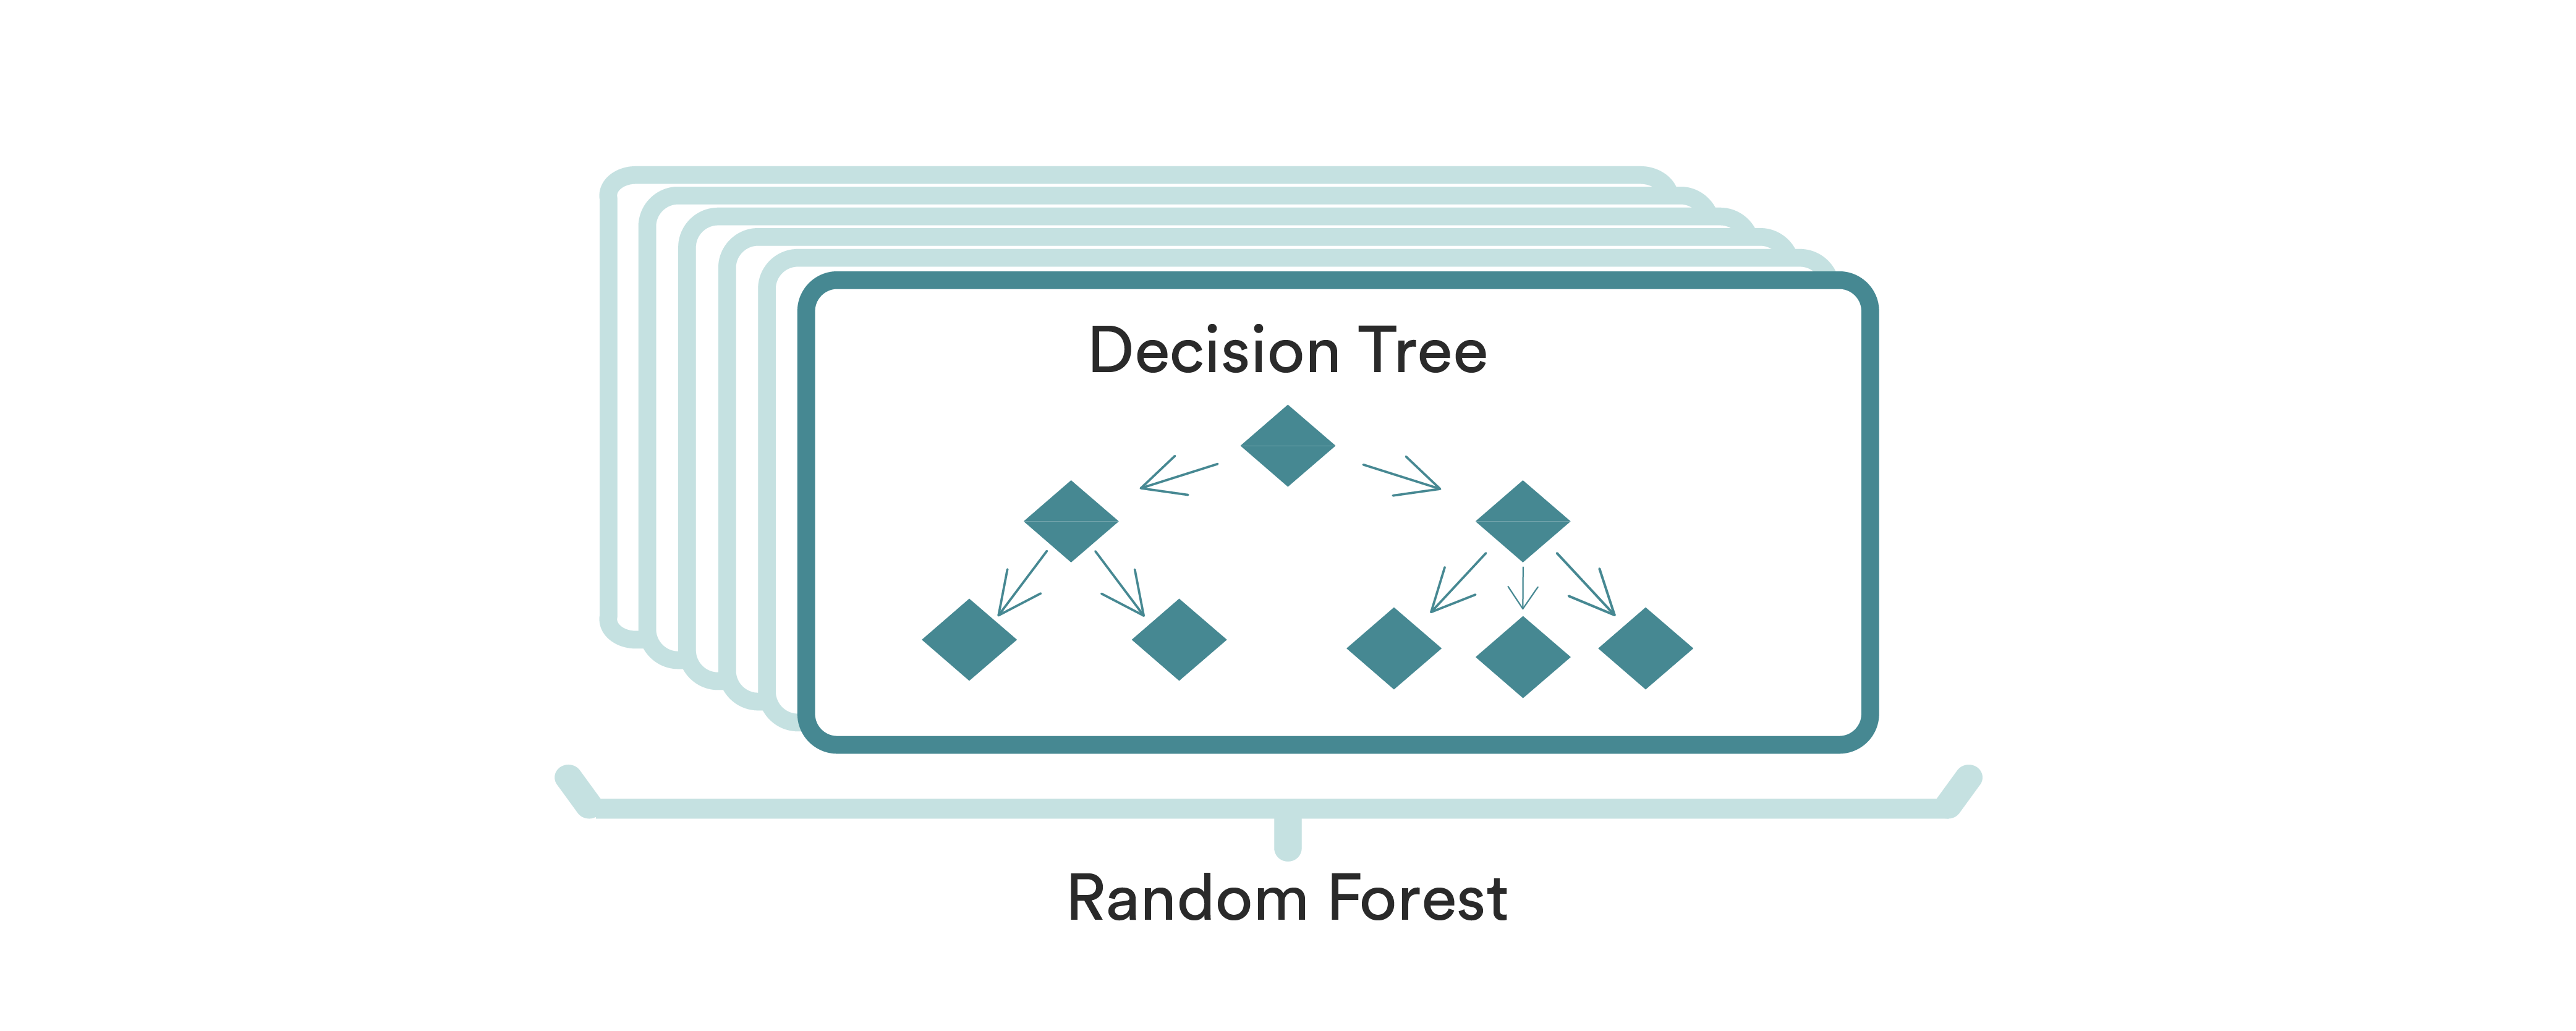 random forest decision tree